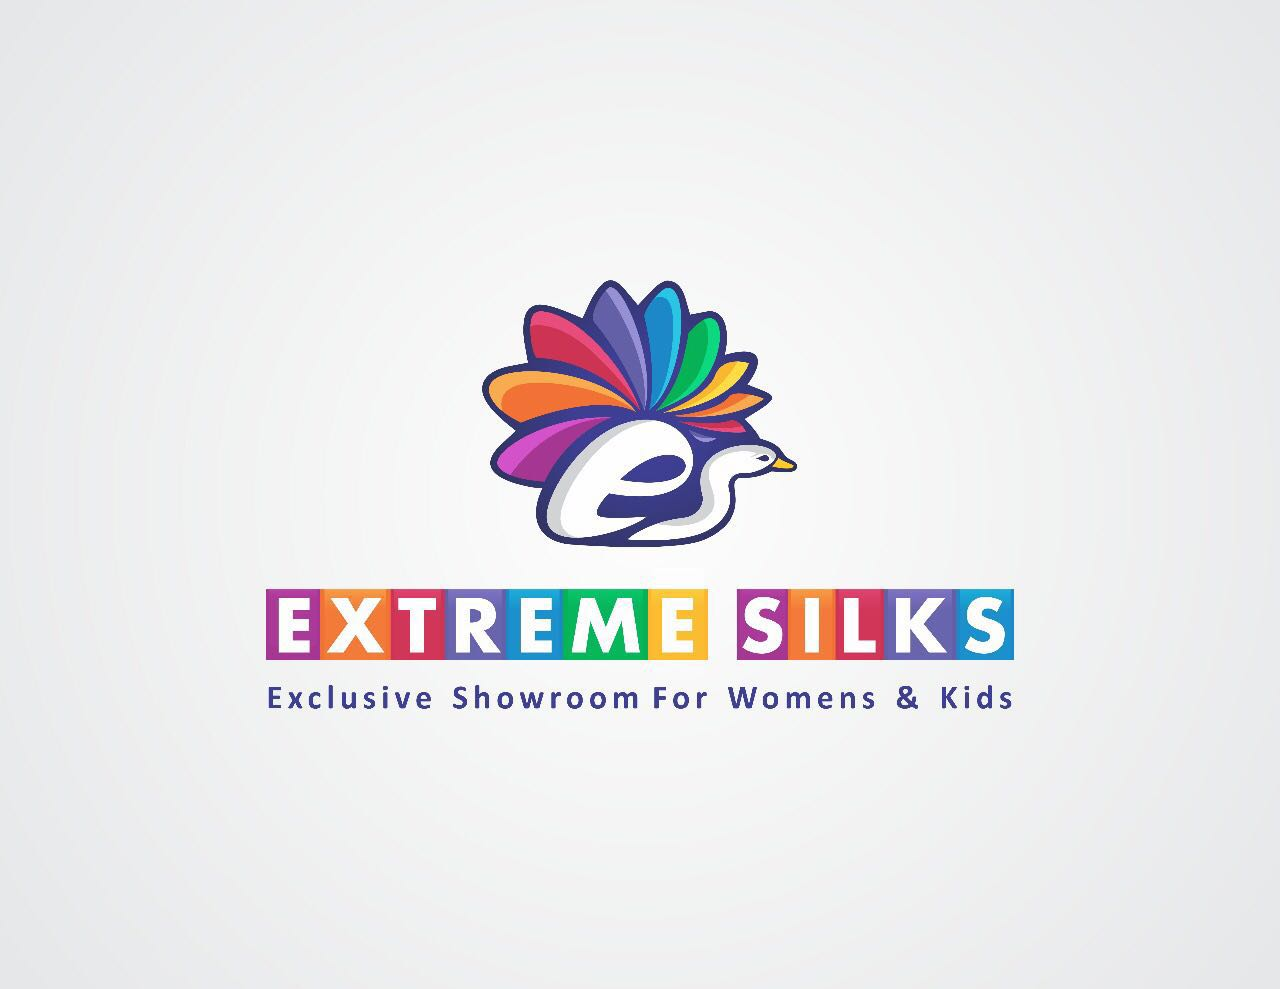 EXTREME SILKS & COLLECTIONS